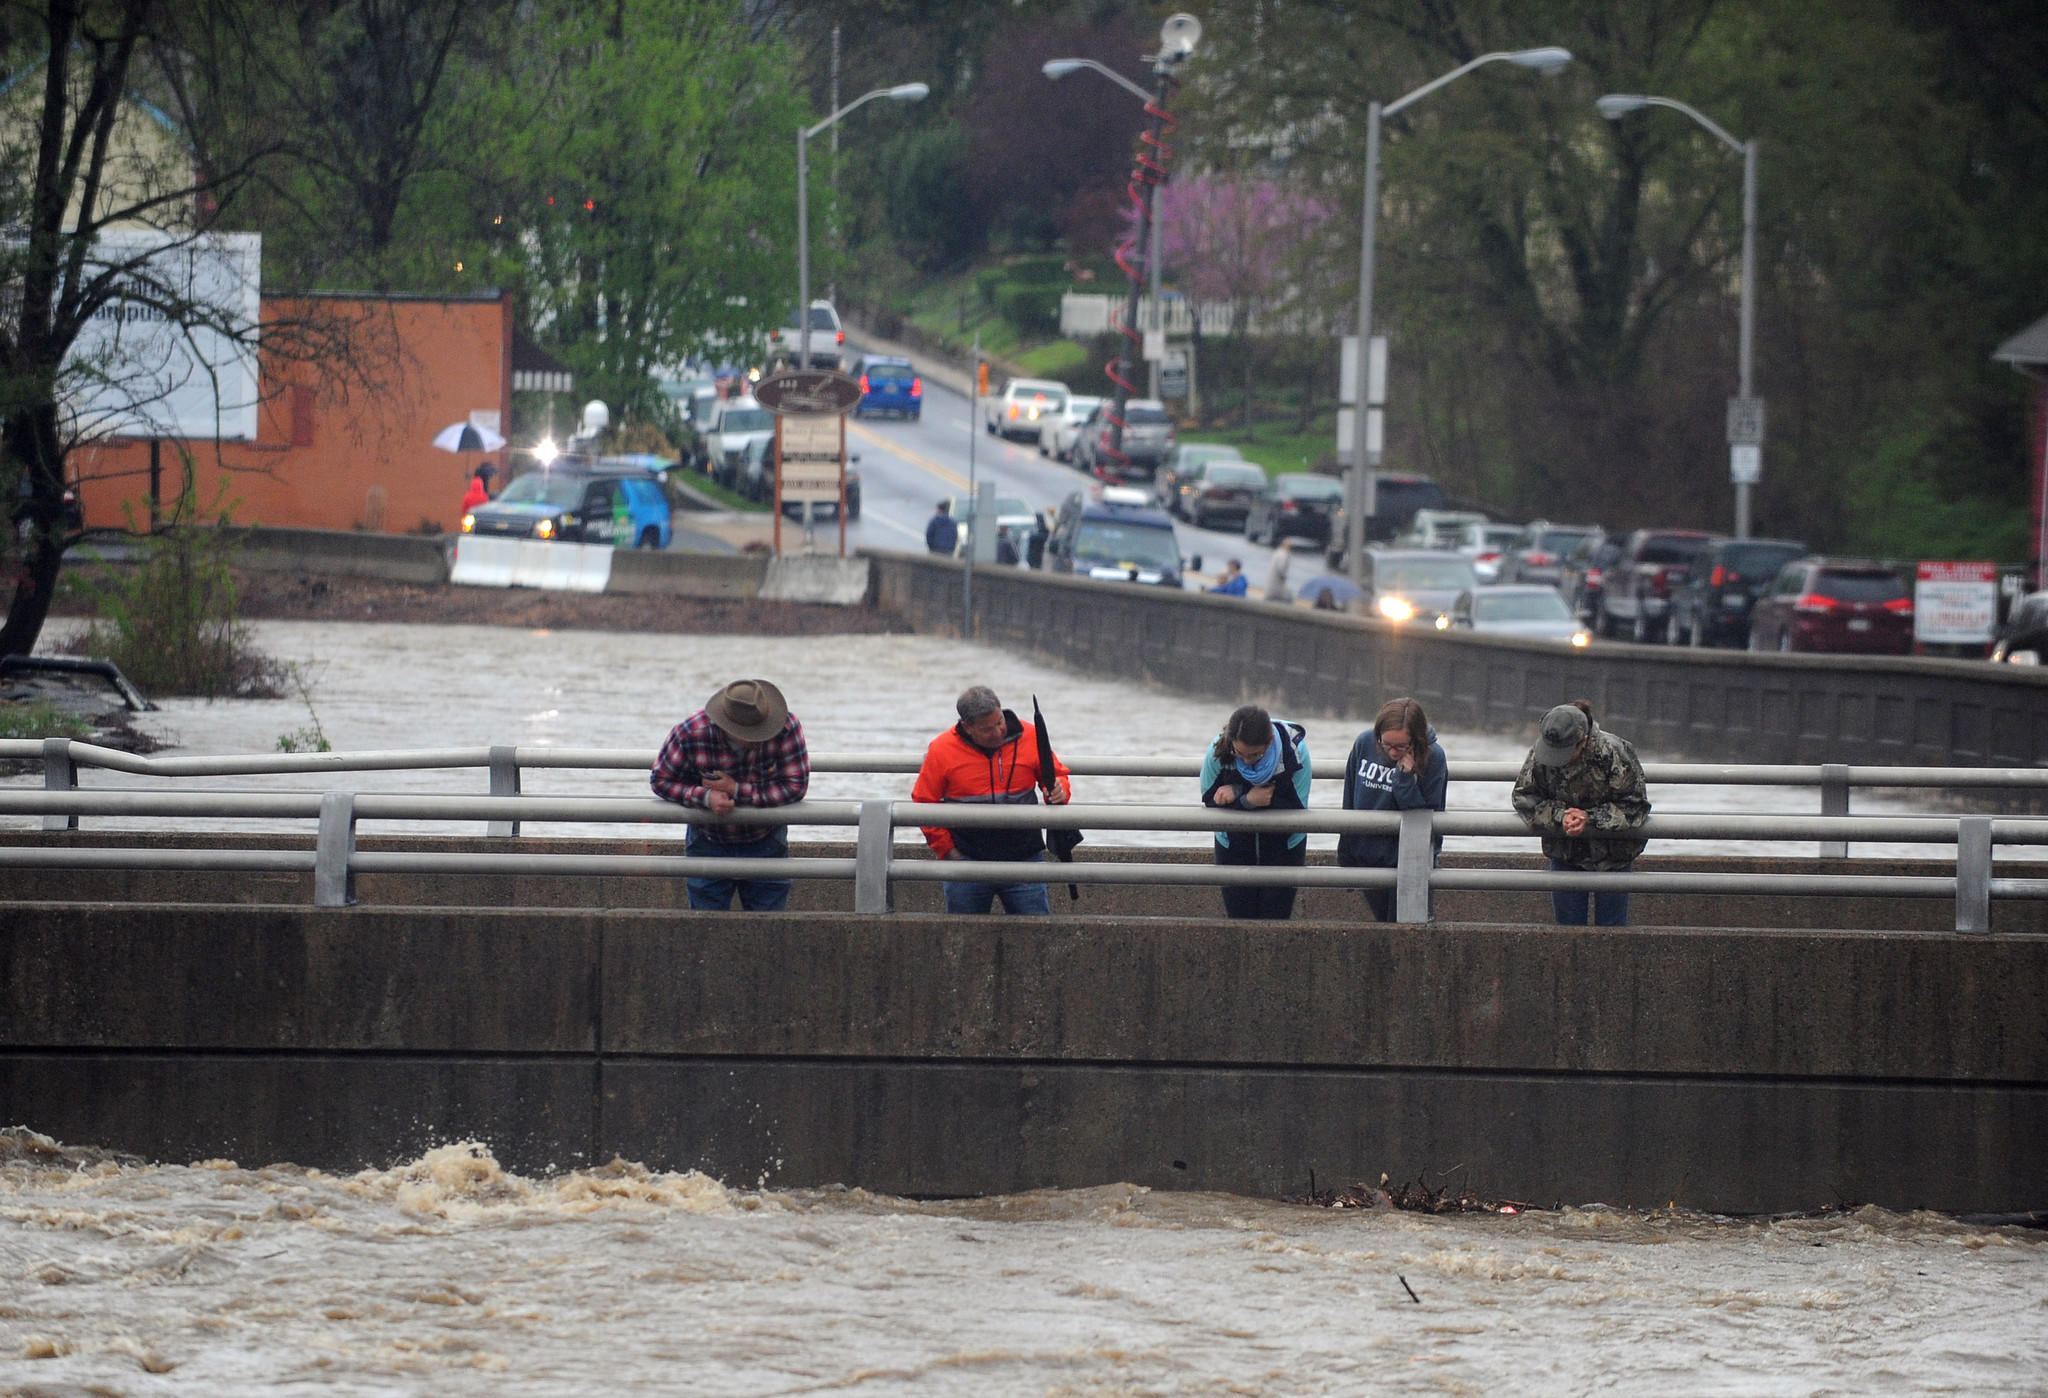 Onlookers watch the high water of the Jones Falls reached the bottom of the Smith Avenue bridge forcing its closure as heavy rain continues.